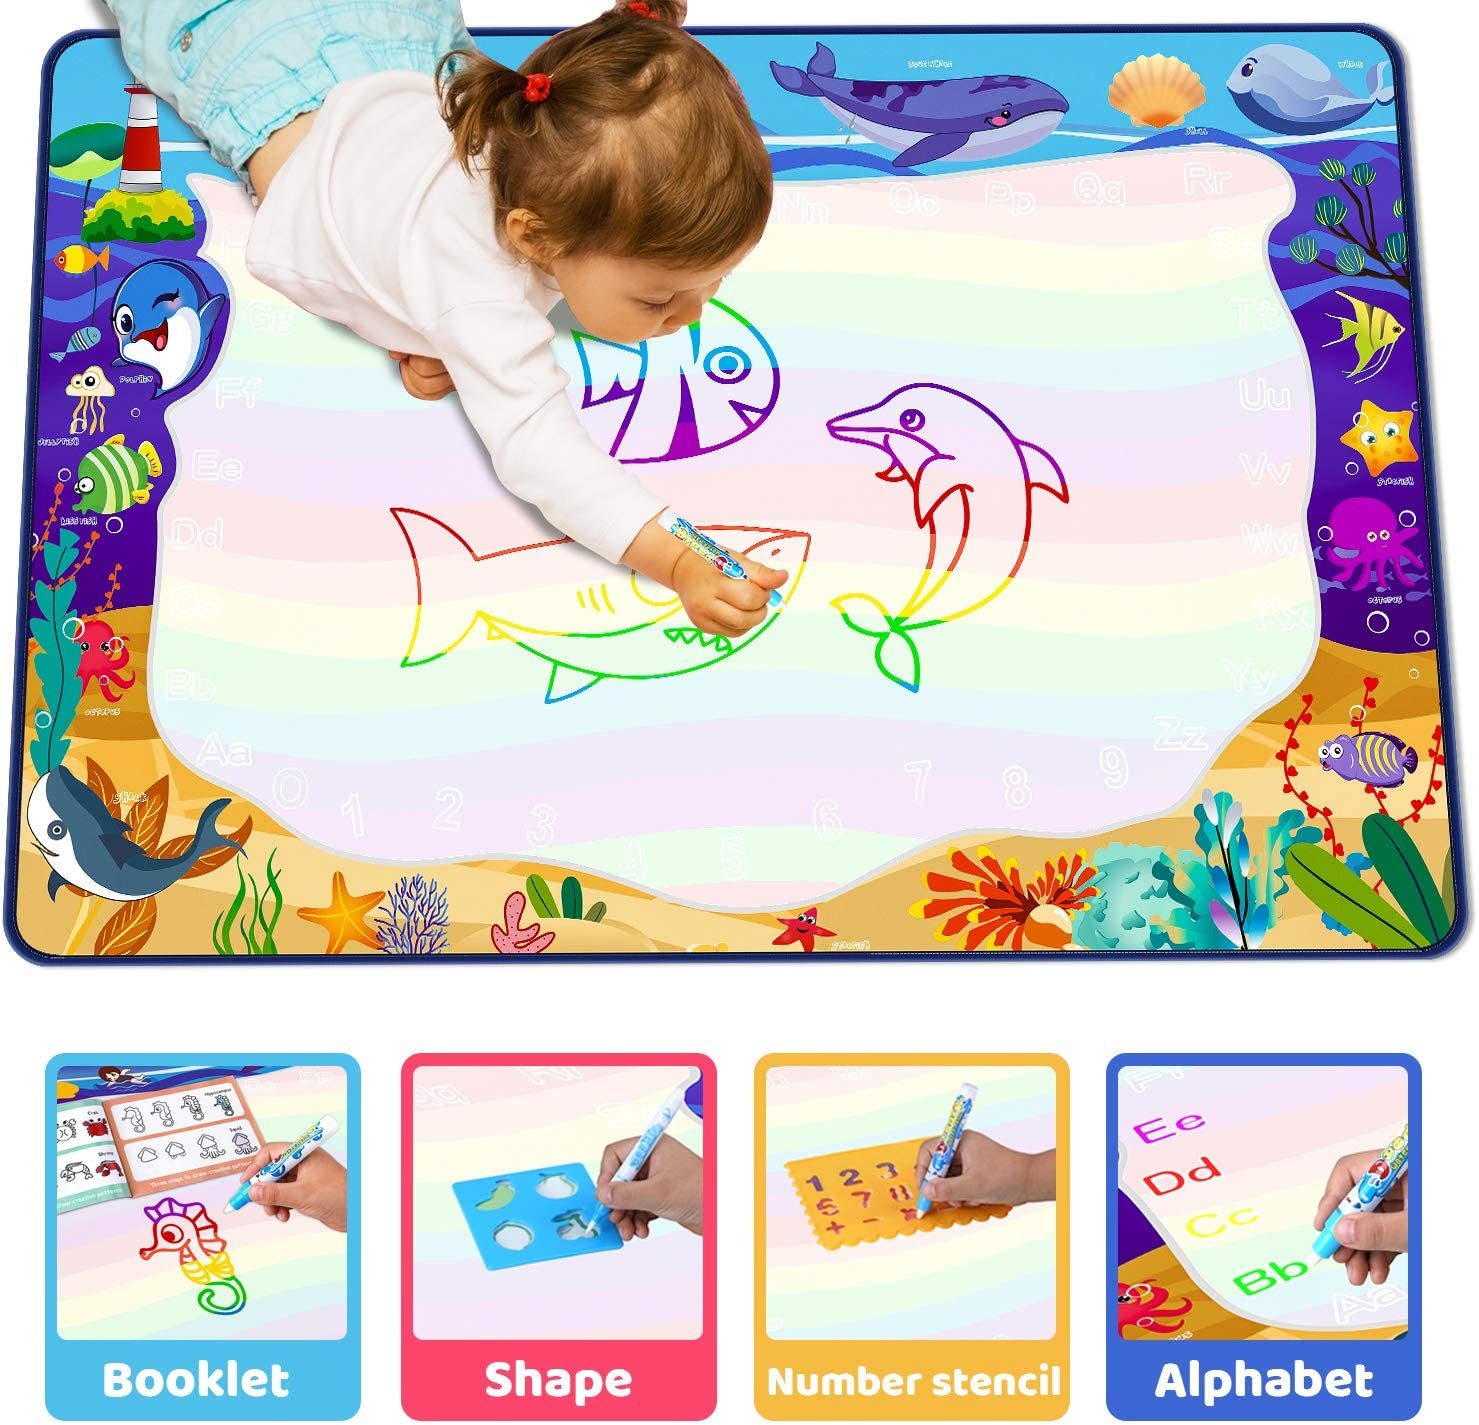 NONZERS Aqua Magic Doodle Mat Wonderful Gift Kids Painting Writing Doodle Board Toy with Water Pens for Kids Toddlers Educational Toy Extra Large 59 X 39 Inches Water Painting Drawing Mat